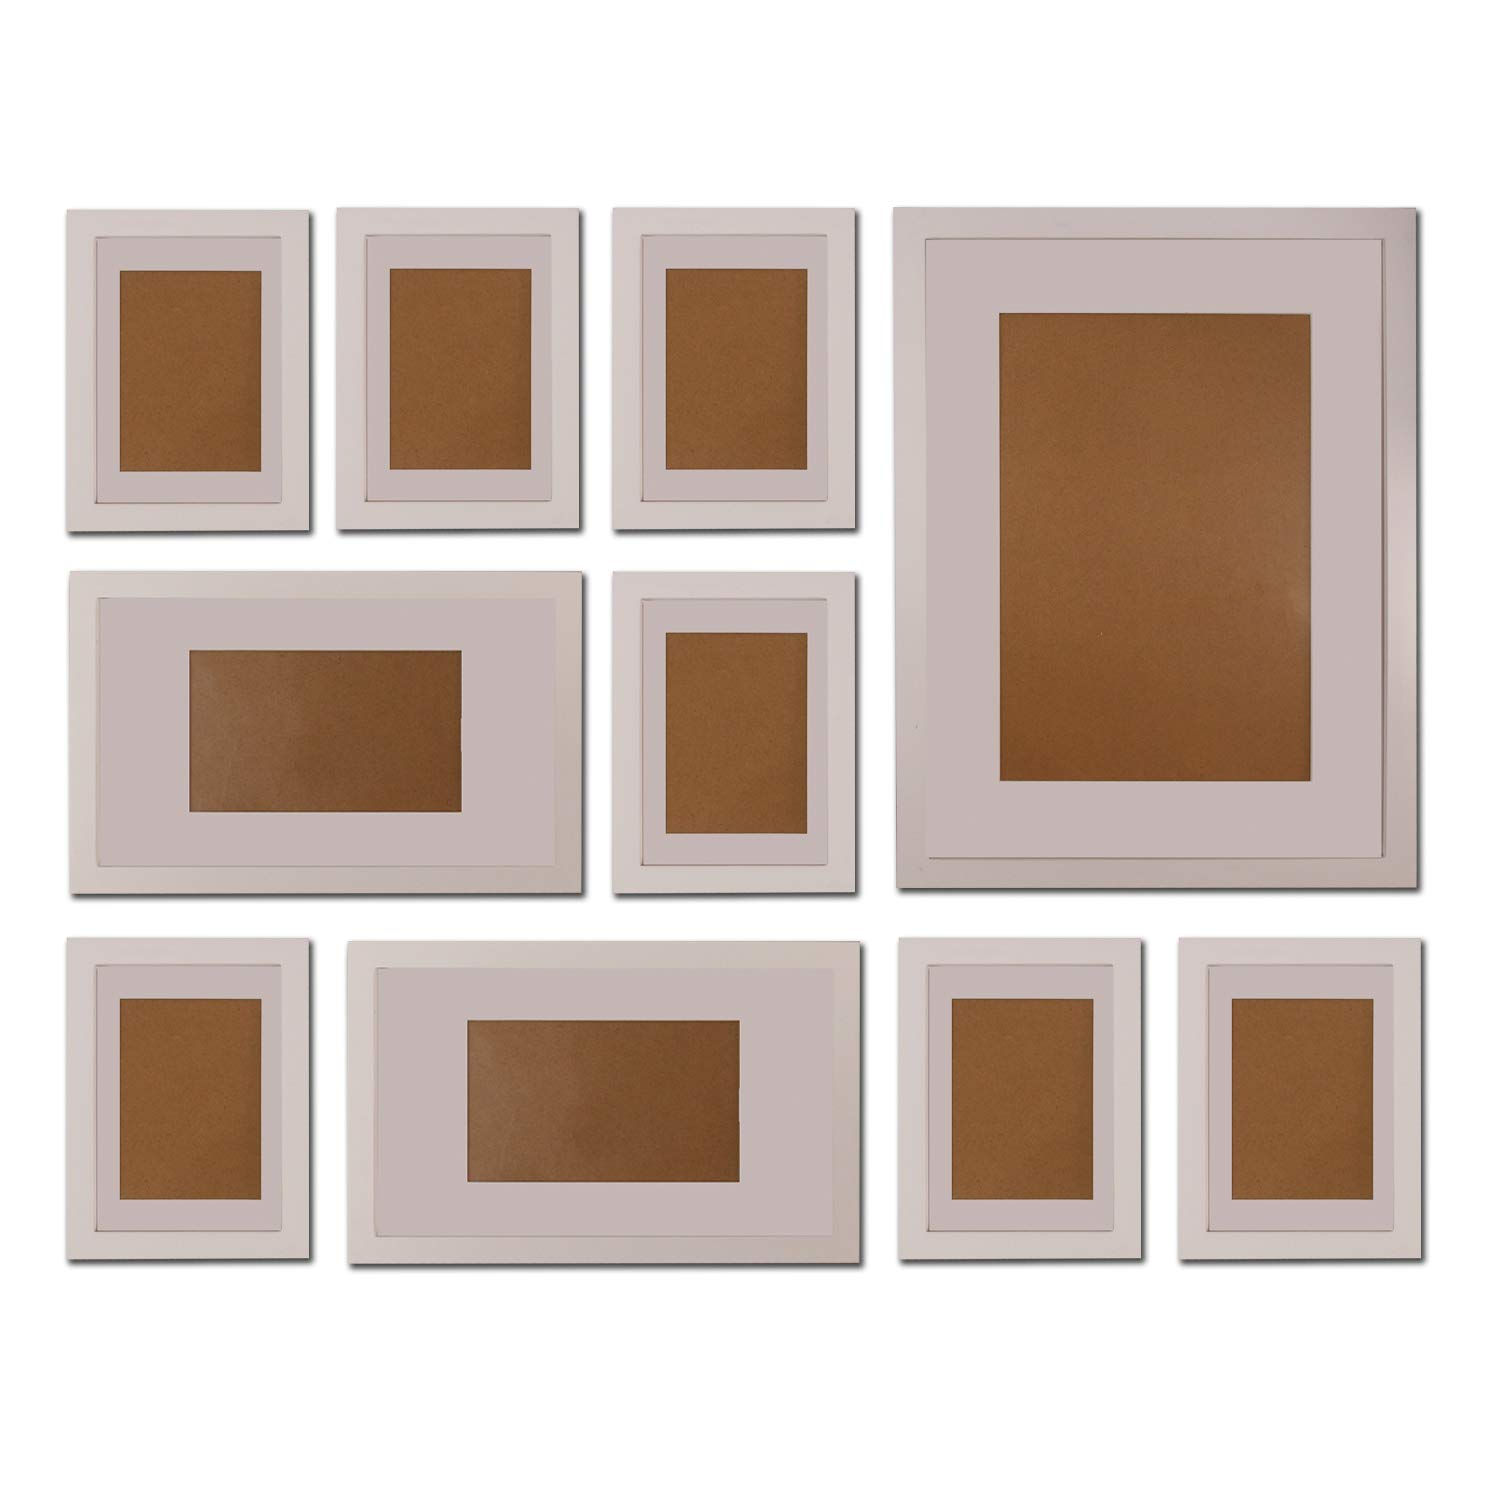 "FUNTRESS 10 Pieces Gallery Wall Photo Frames Set for Wall 16'' 12"" 7"" Size Wooden Combination Pictures Frames Baby Room Living Room with Mats(White)"